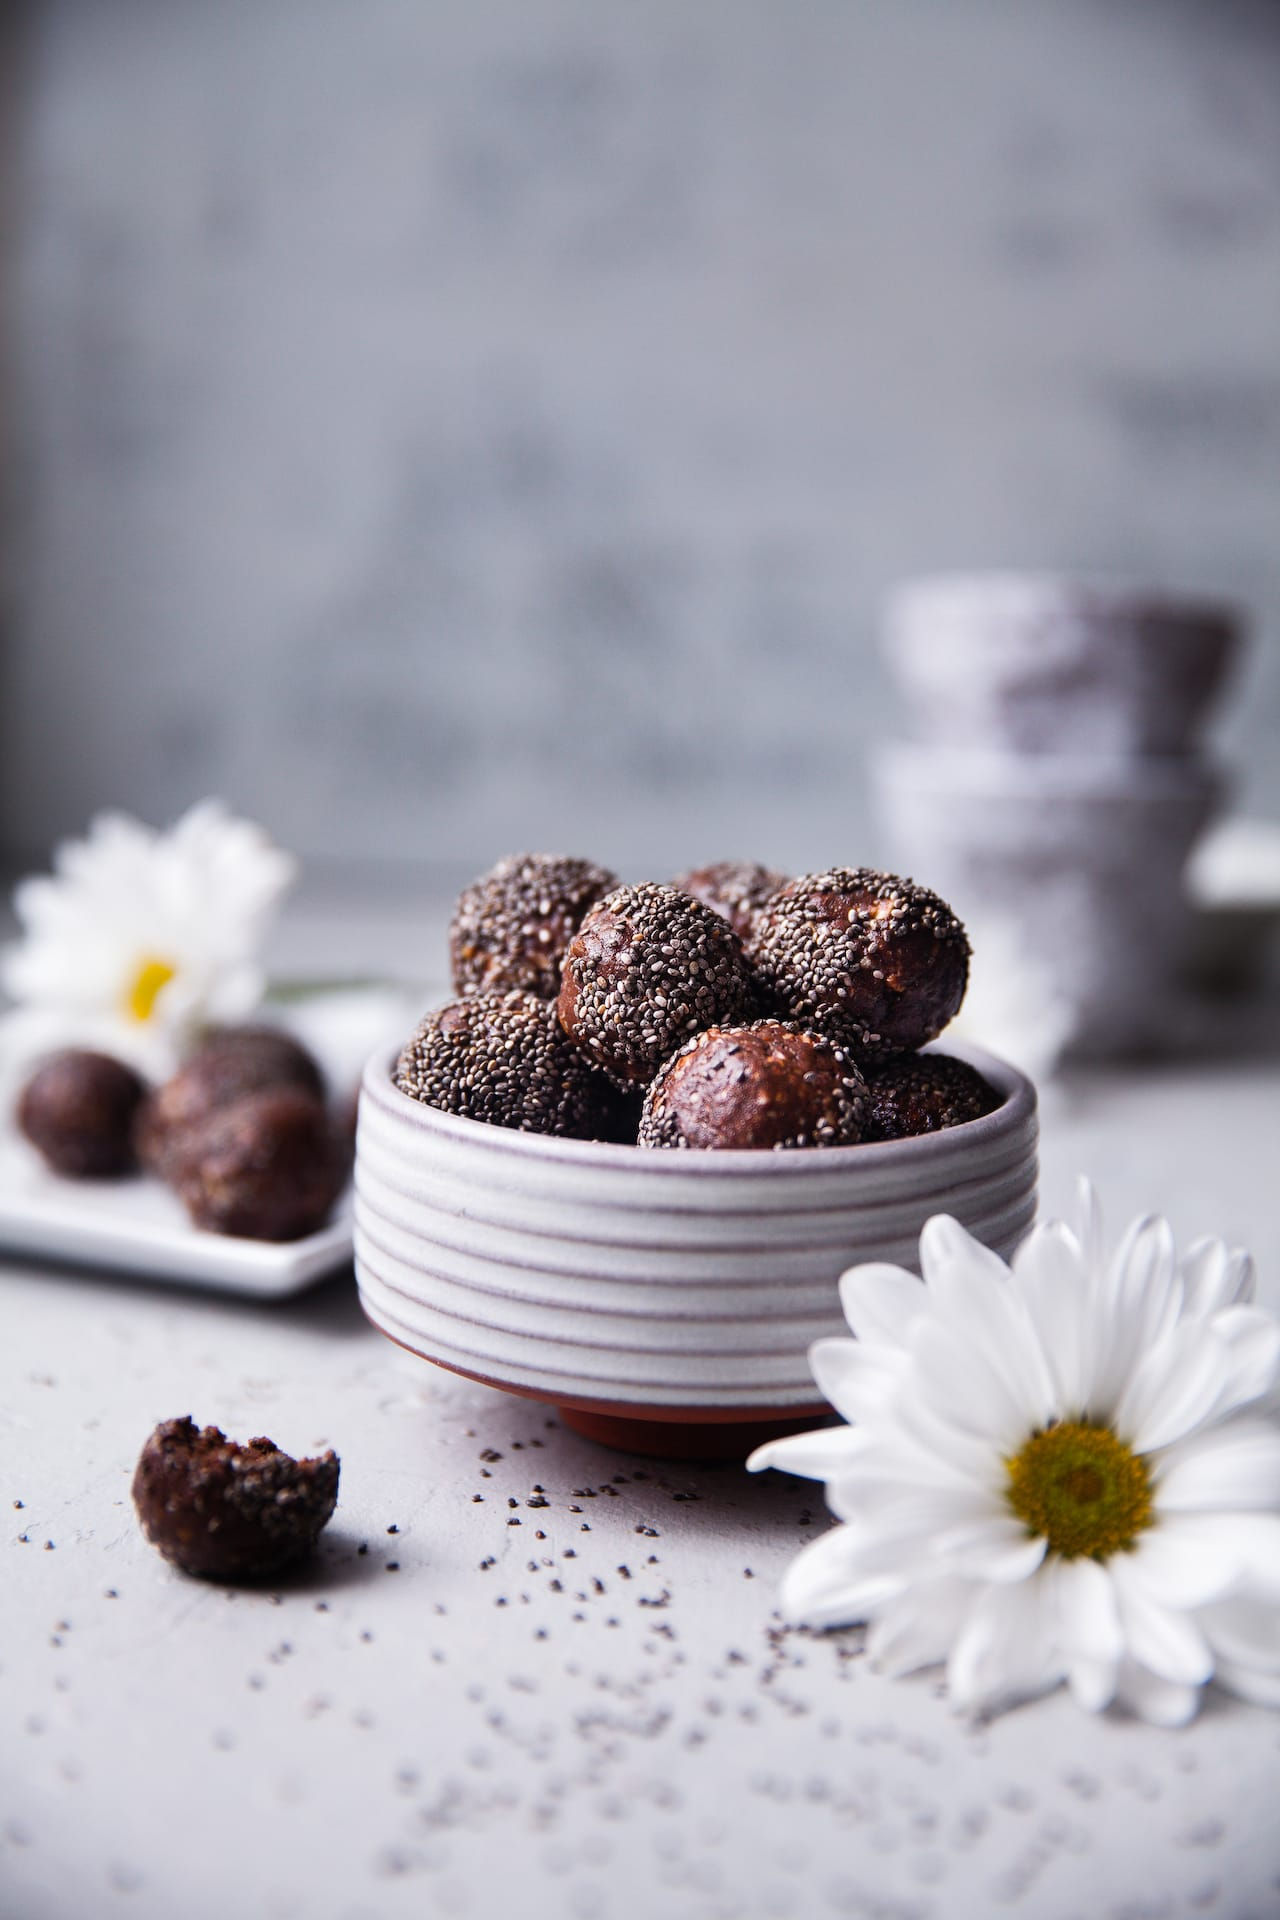 Cocoa Chia Nut Energy Balls | Playful Cooking #enerygyballs #chia #foodphotography #playfulcooking #nobake